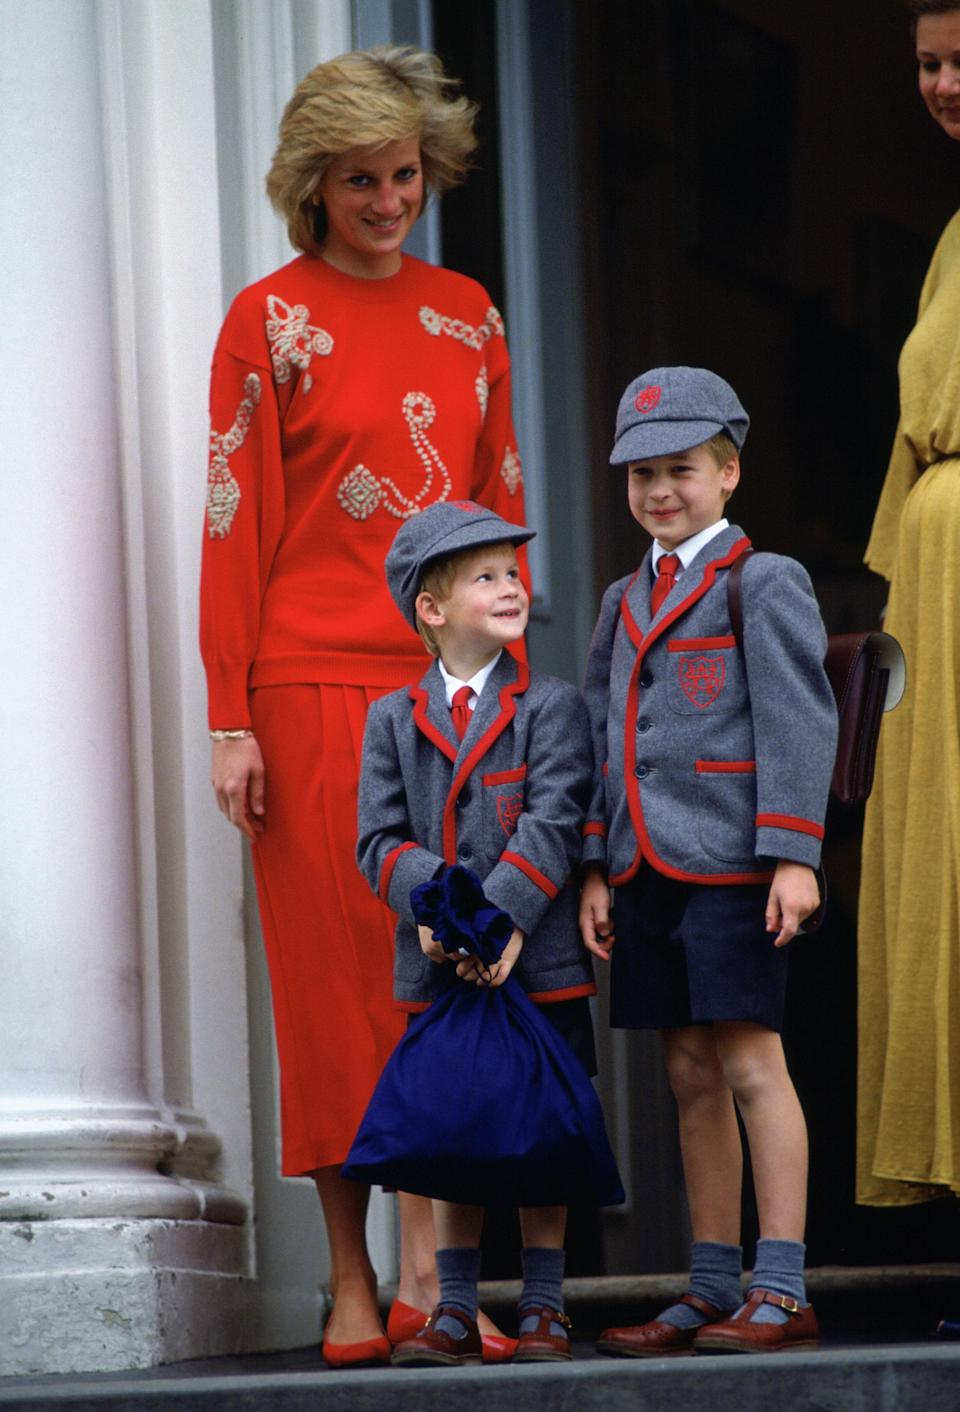 """<p>At his mother's insistence, William became the first heir to the throne to <a href=""""http://www.goodhousekeeping.com/life/entertainment/g2733/prince-william-prince-harry-back-to-school-memories/"""" rel=""""nofollow noopener"""" target=""""_blank"""" data-ylk=""""slk:attend public school"""" class=""""link rapid-noclick-resp"""">attend public school</a> — at Jane Mynor's nursery school near Kensington Palace. """"<span>The decision to have William, 3, develop his finger-painting skills among commoners showed the influence of Diana, Princess of Wales, who had worked in a nursery school herself when she was just a Lady,"""" George Hackett <a href=""""http://www.newsweek.com/princess-diana-diana-william-harry-prince-william-prince-harry-royal-family-383384"""" rel=""""nofollow noopener"""" target=""""_blank"""" data-ylk=""""slk:wrote"""" class=""""link rapid-noclick-resp"""">wrote</a> in <em>Newsweek </em>in 1985. </span></p>"""